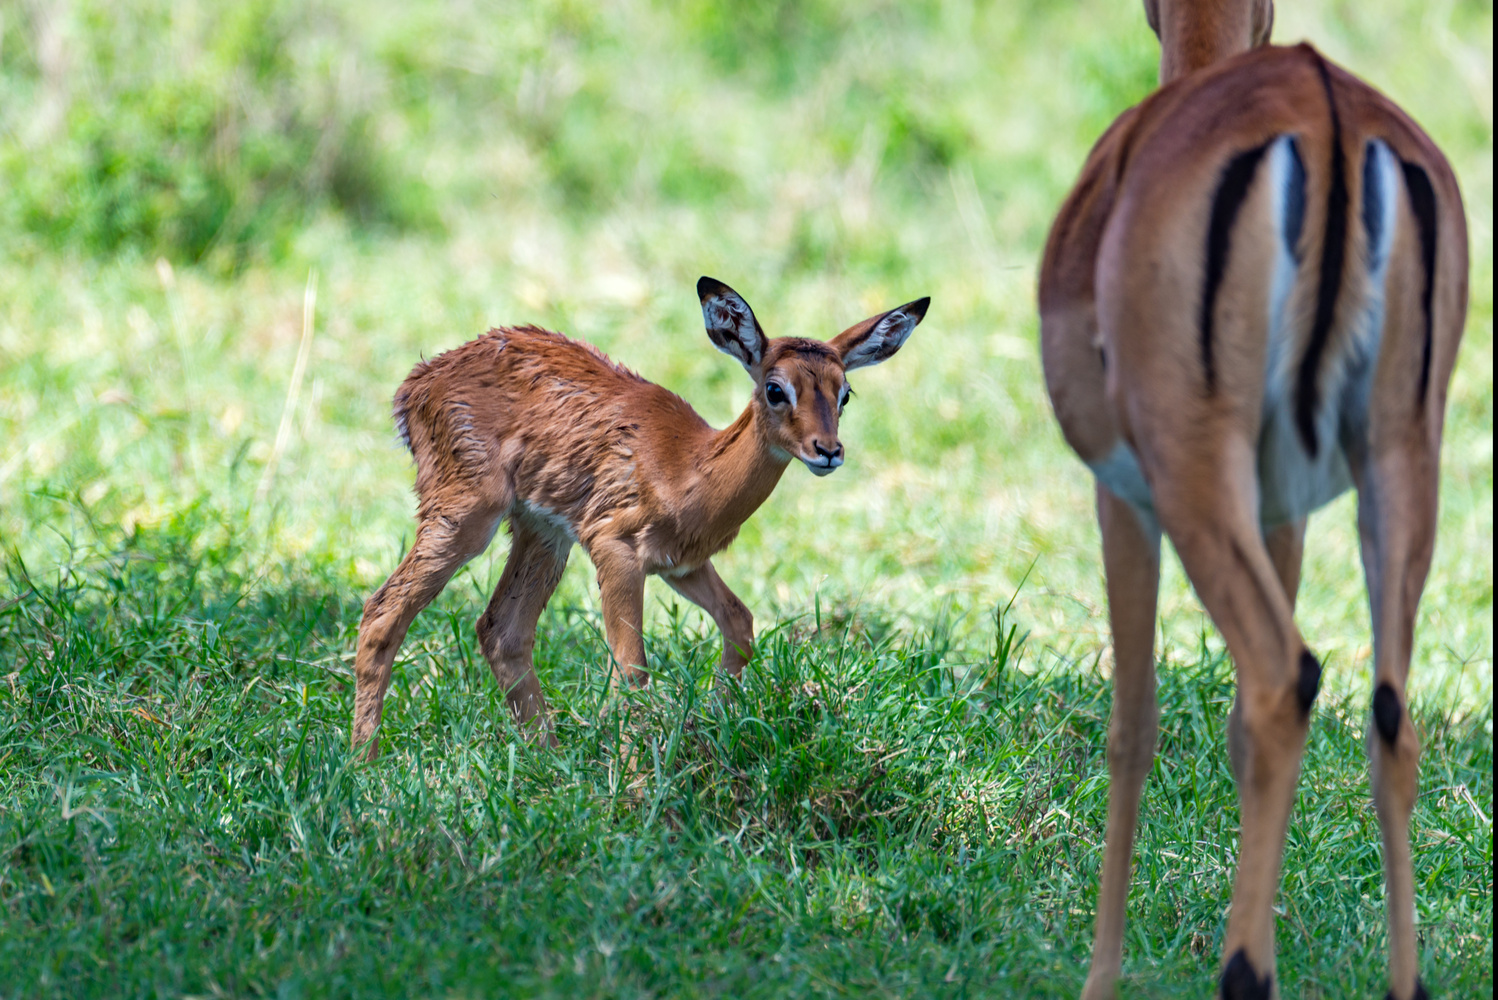 Baby Gazelle Taking First Steps by Ryan Rees